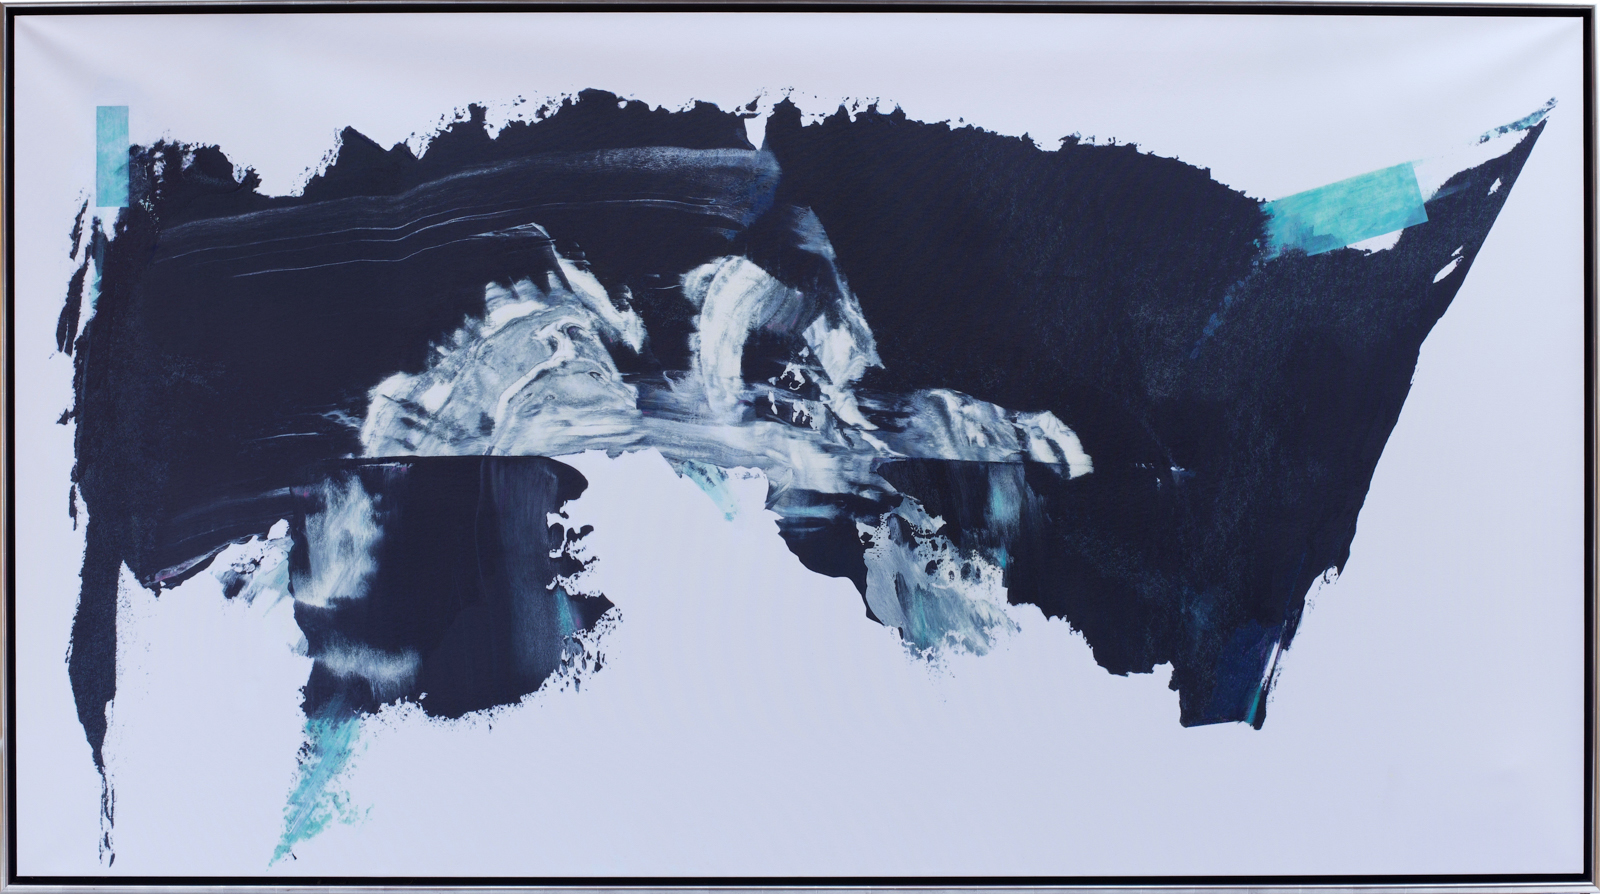 Terry Black | Painting #807